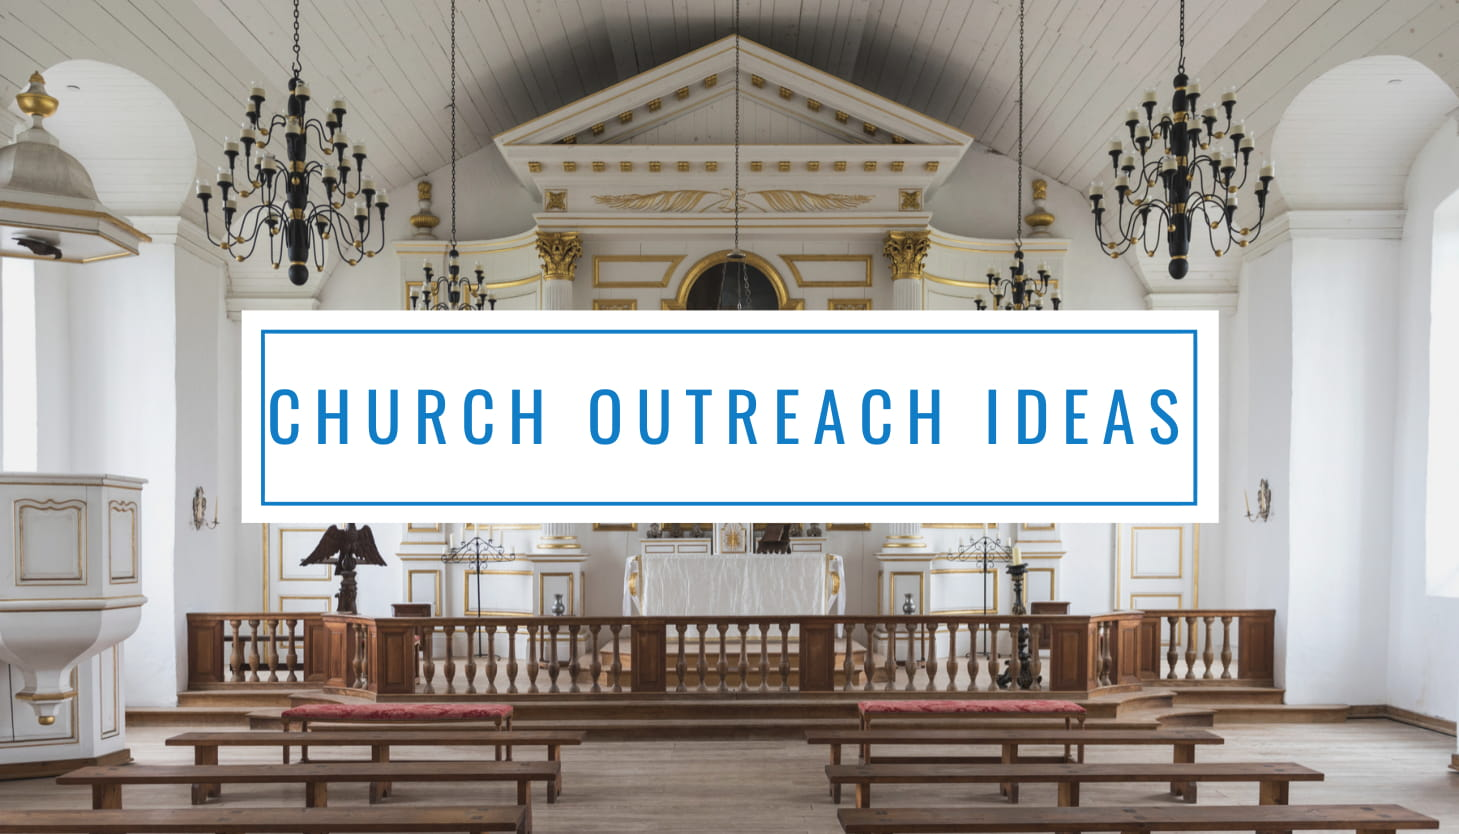 6 Effective Church Outreach Ideas To Grow Your Church- Donorbox